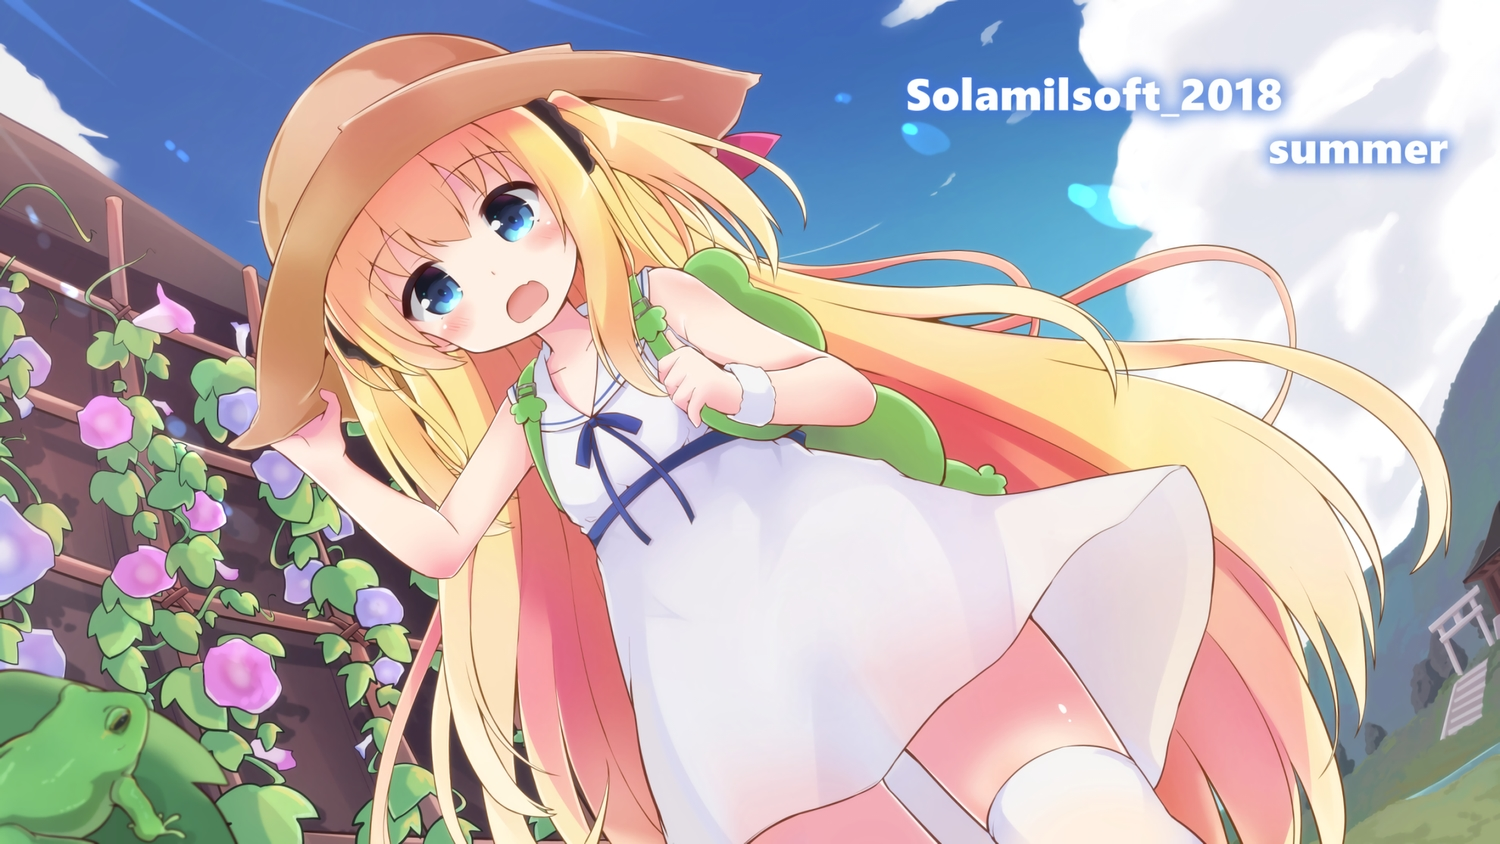 animal aqua_eyes blonde_hair blush dress fang flowers frog hat loli long_hair original solar_milk summer summer_dress thighhighs torii twintails waifu2x wristwear